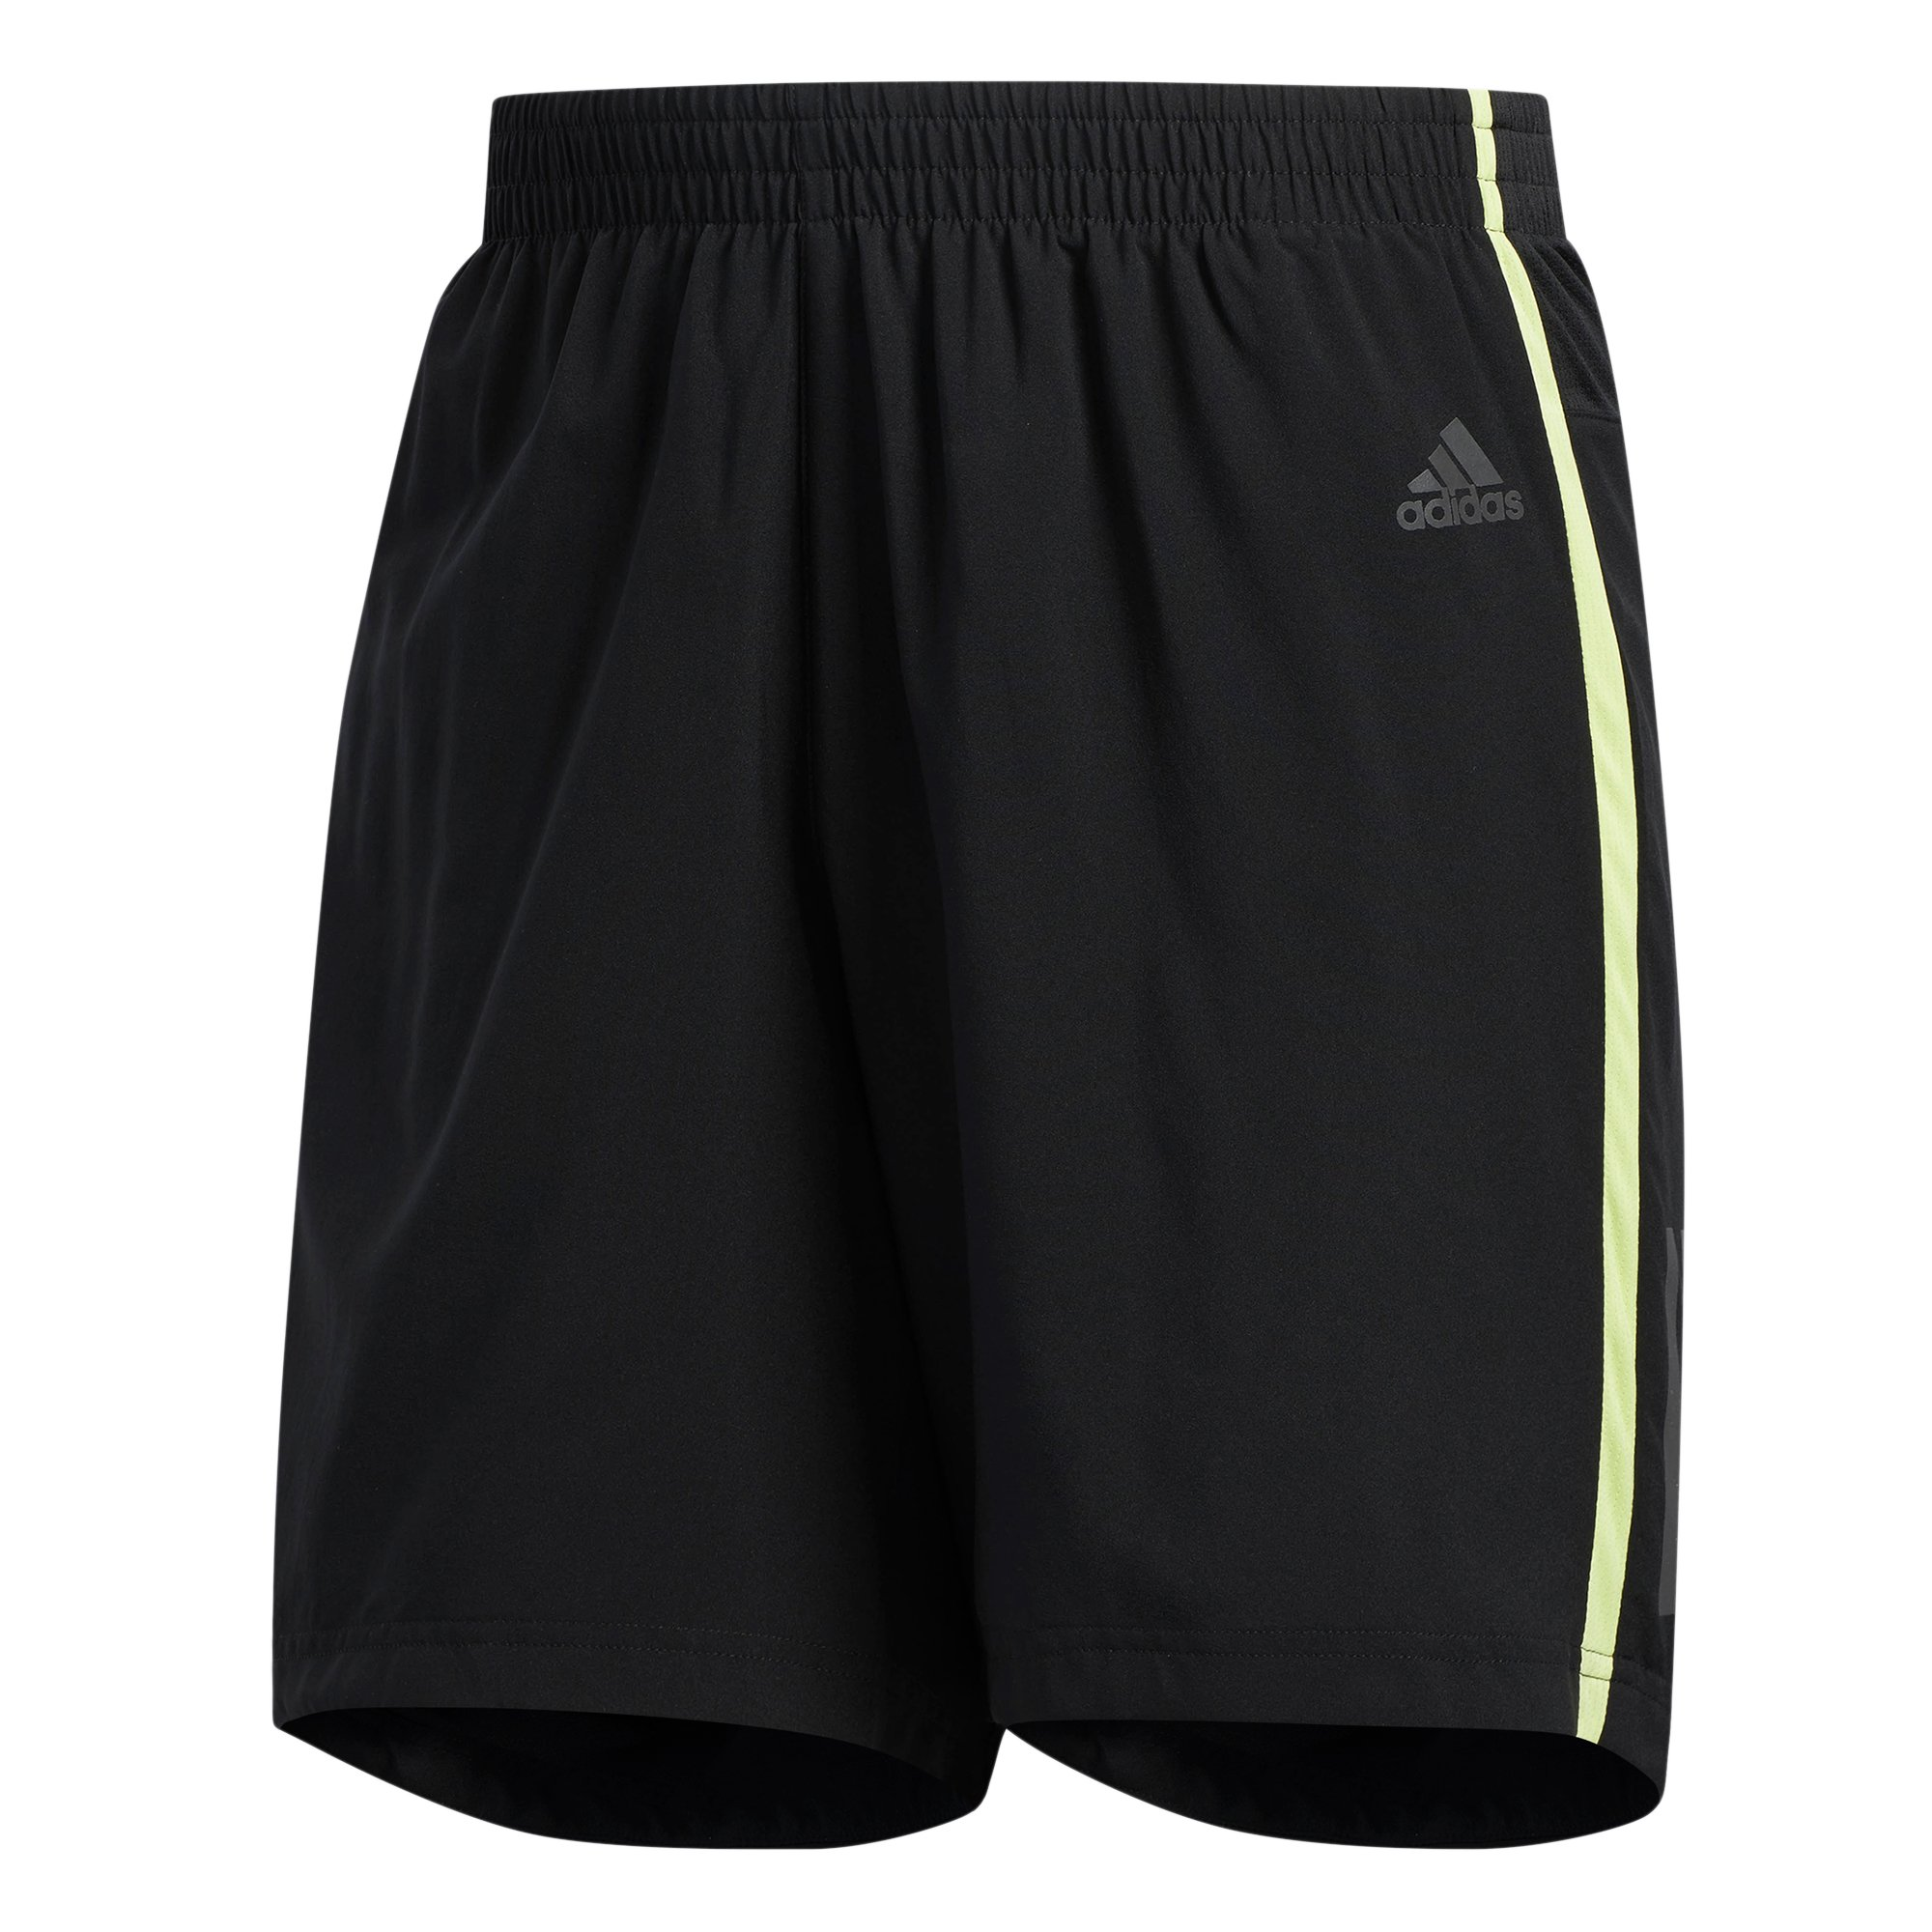 adidas Men's Response 5'' Shorts Black/Semi Frozen Yellow X-Large 5